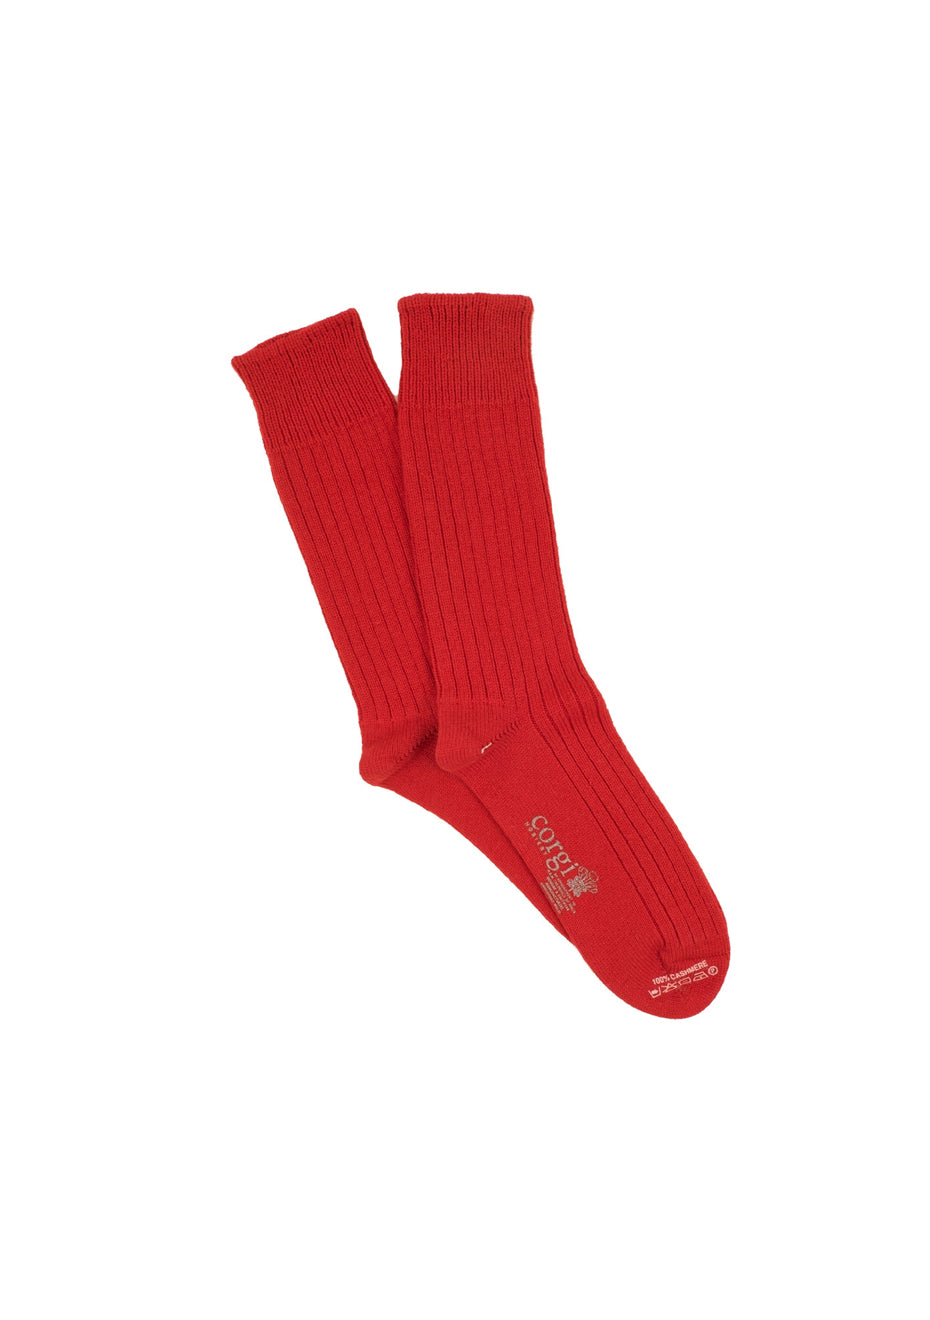 Men's Red Cashmere Socks